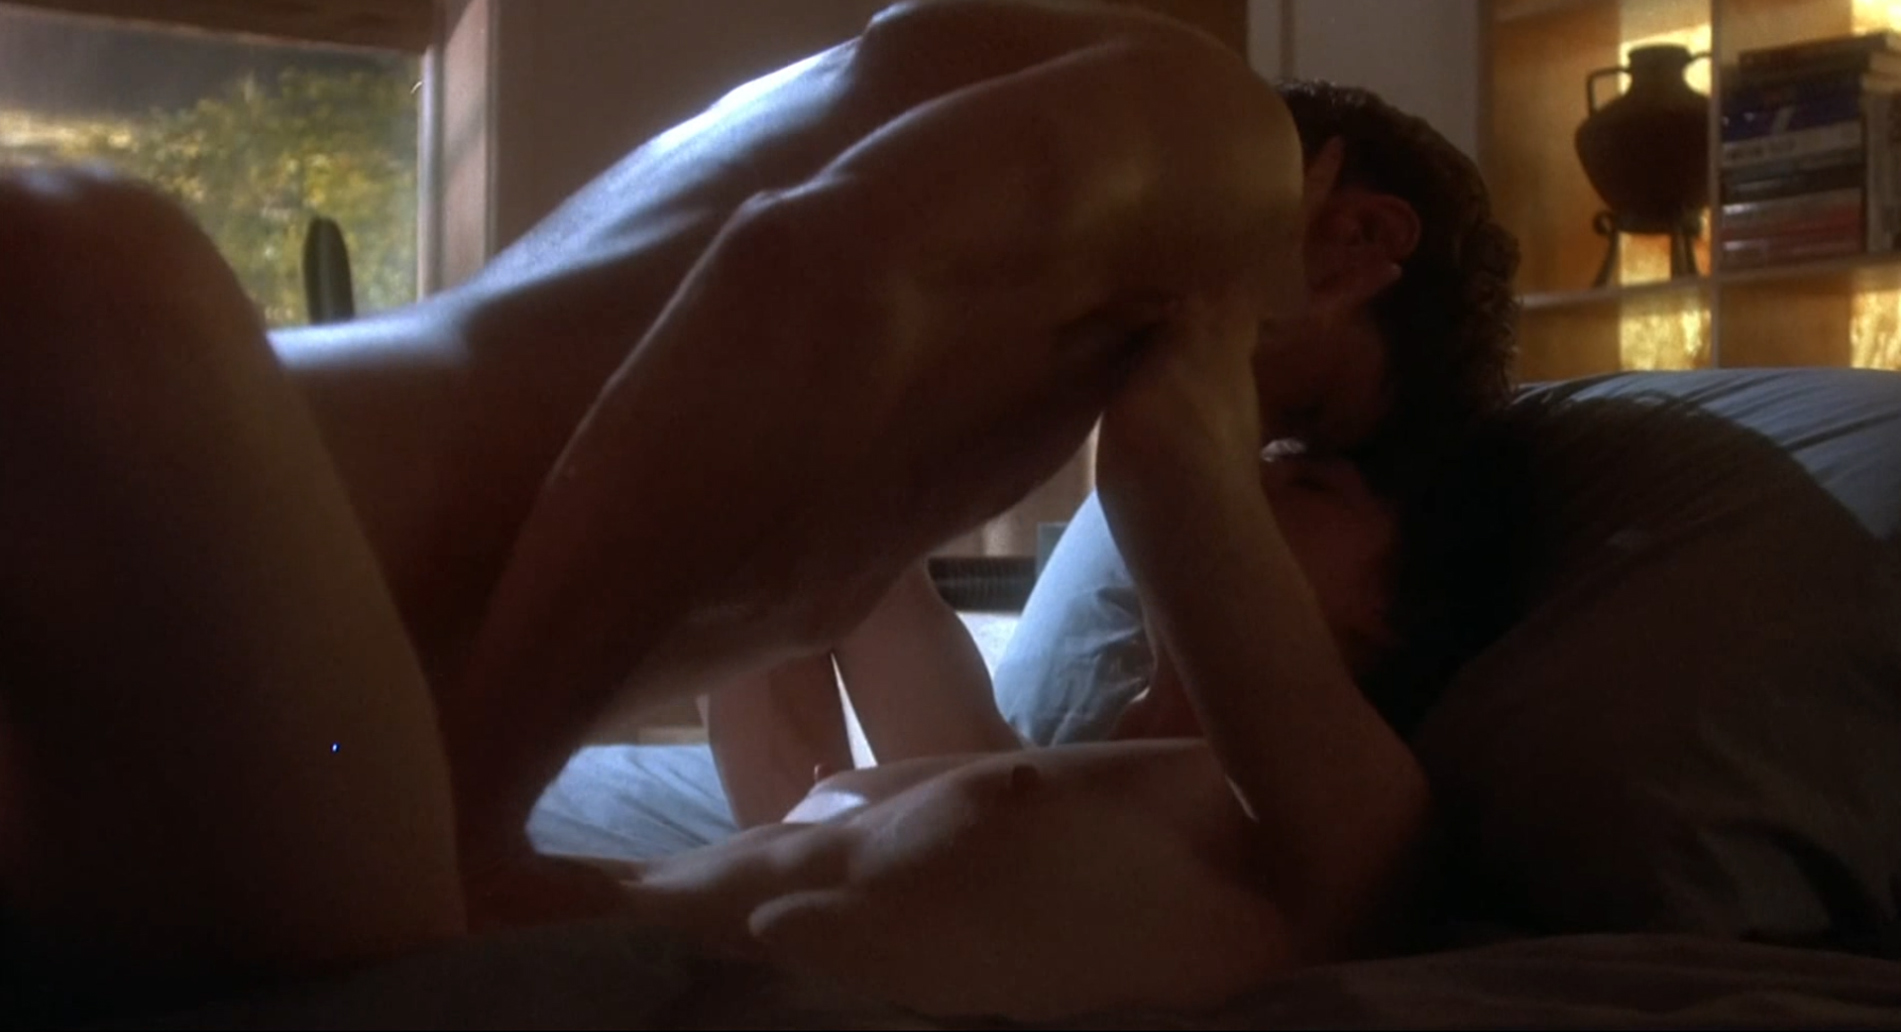 Julianne moore sex sceen